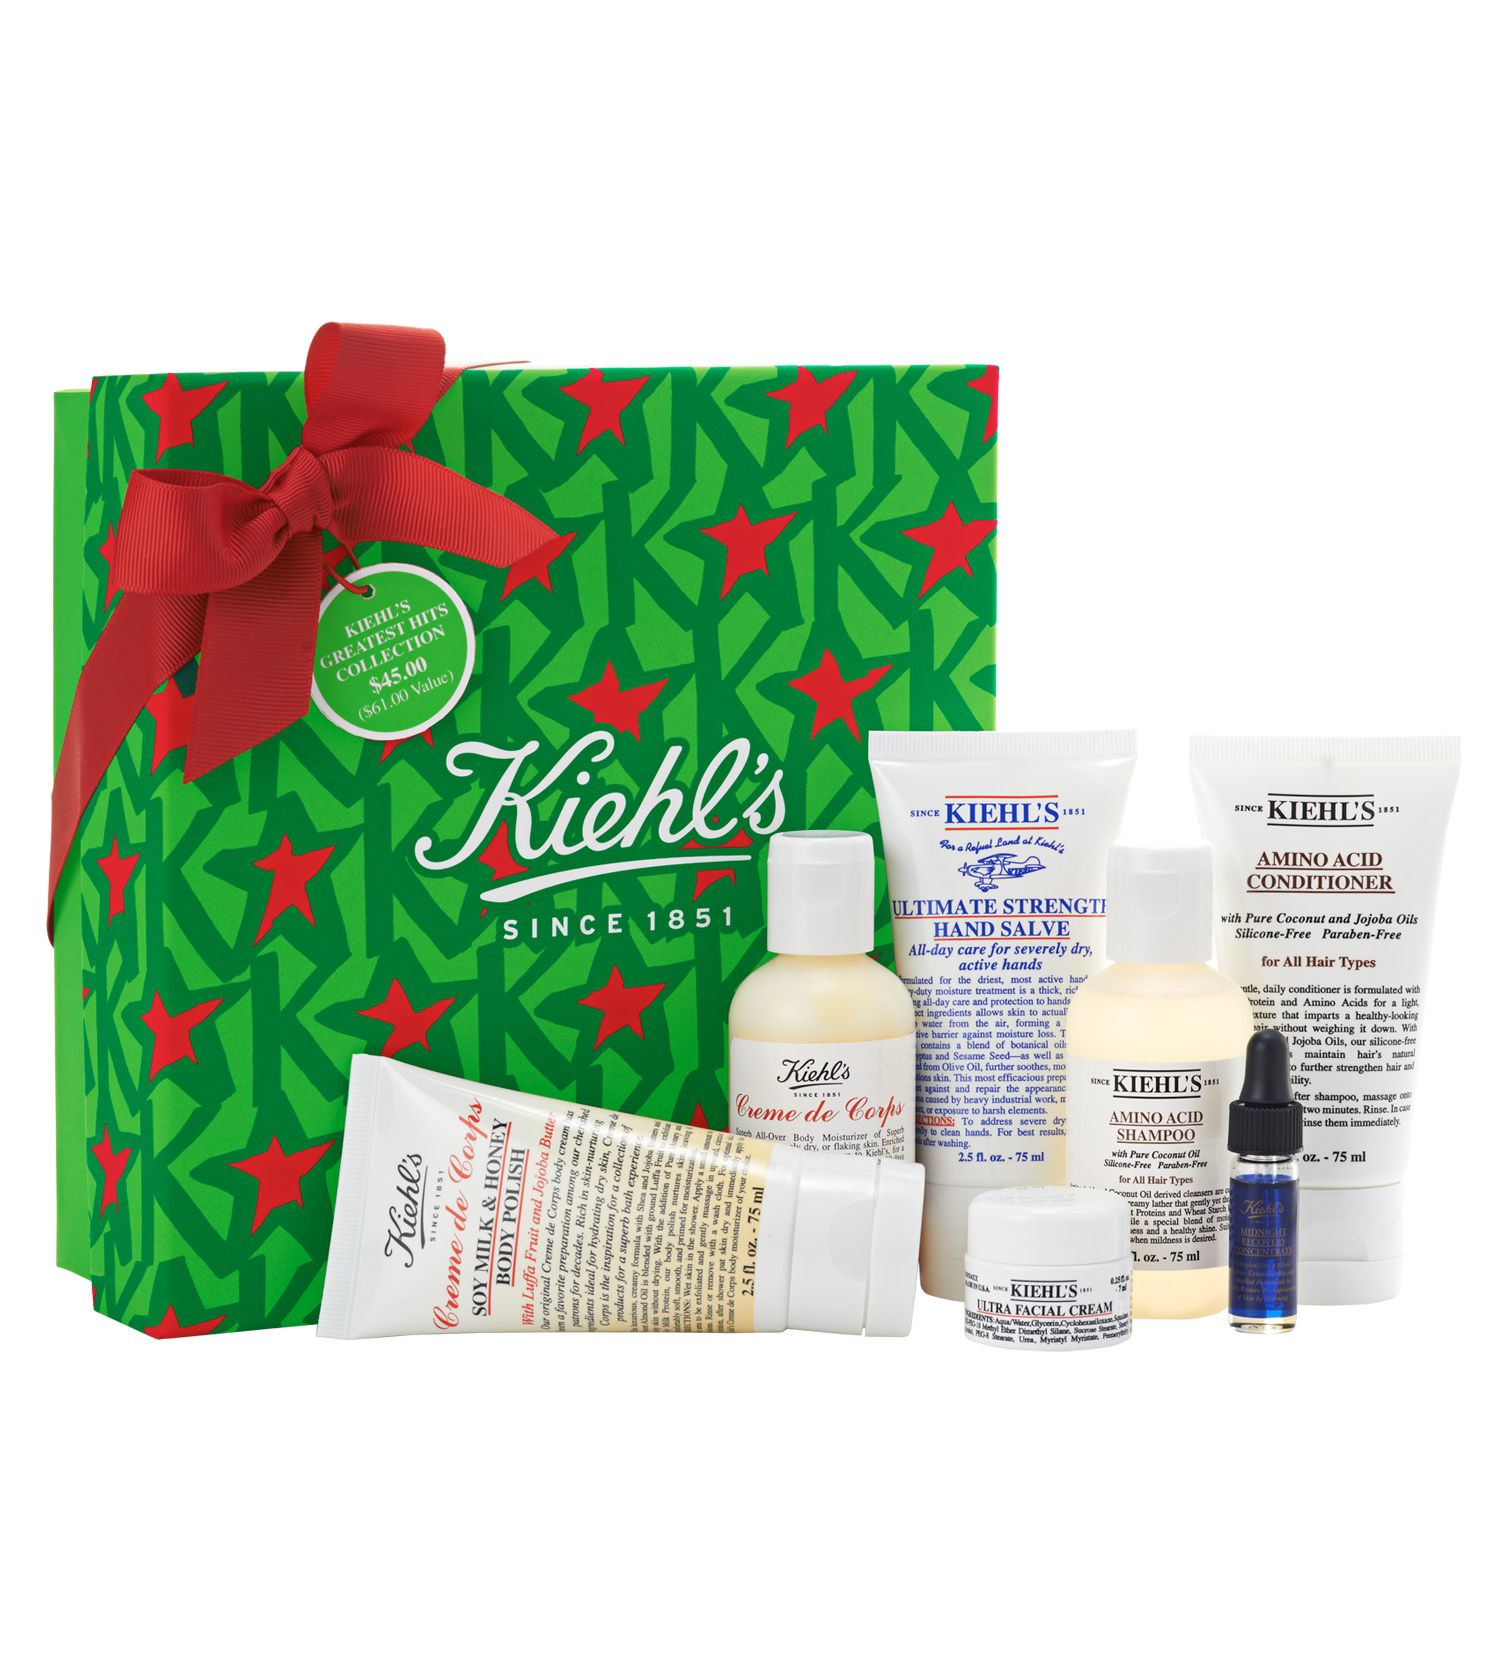 Kiehls greatest hits collection 45 kiehls gifts